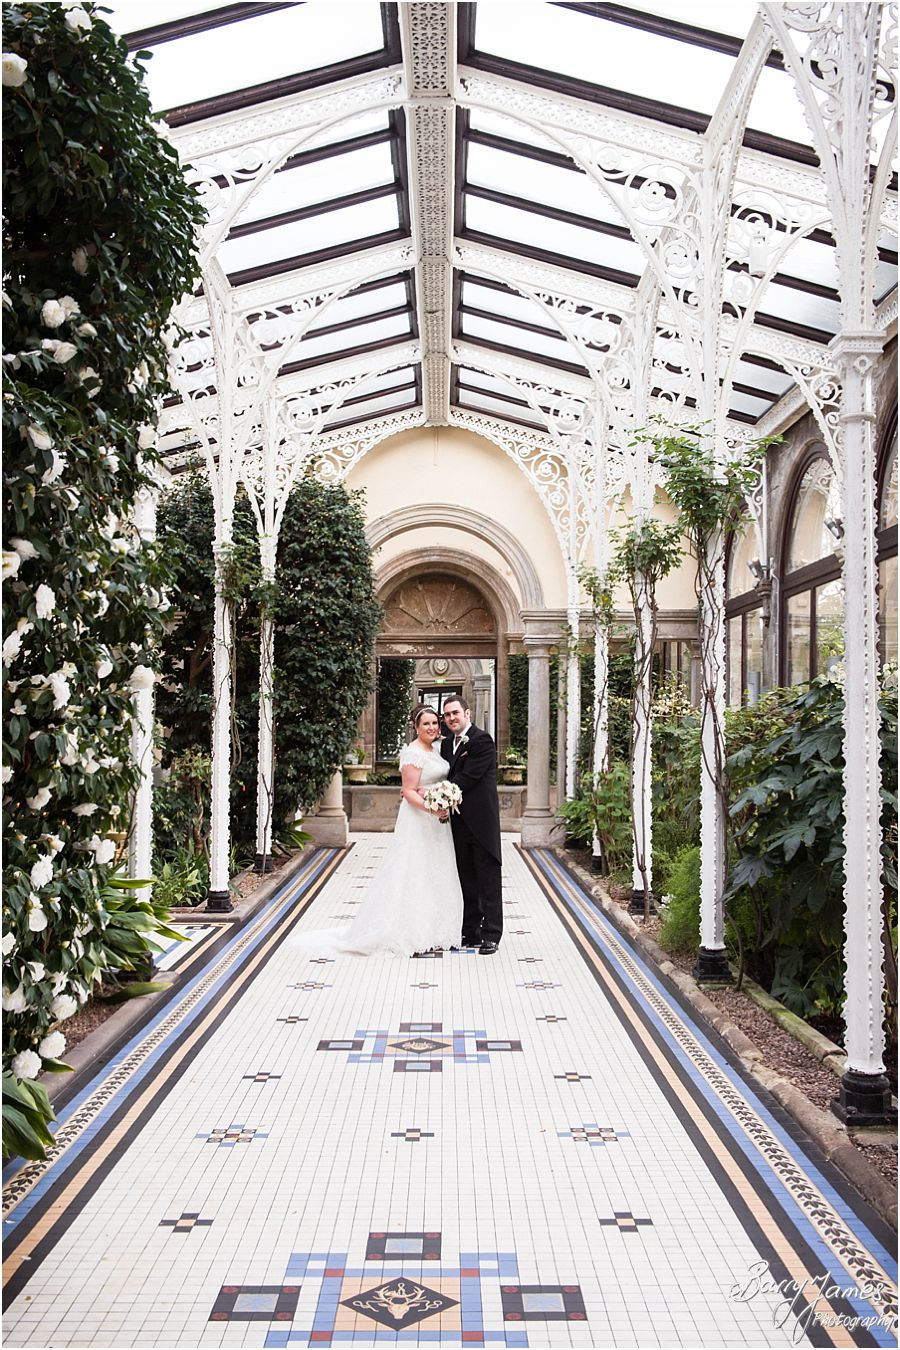 Elegant natural portraits of the newly married couple at Sandon Hall in Stafford by Stafford Contemporary Wedding Photographer Barry James